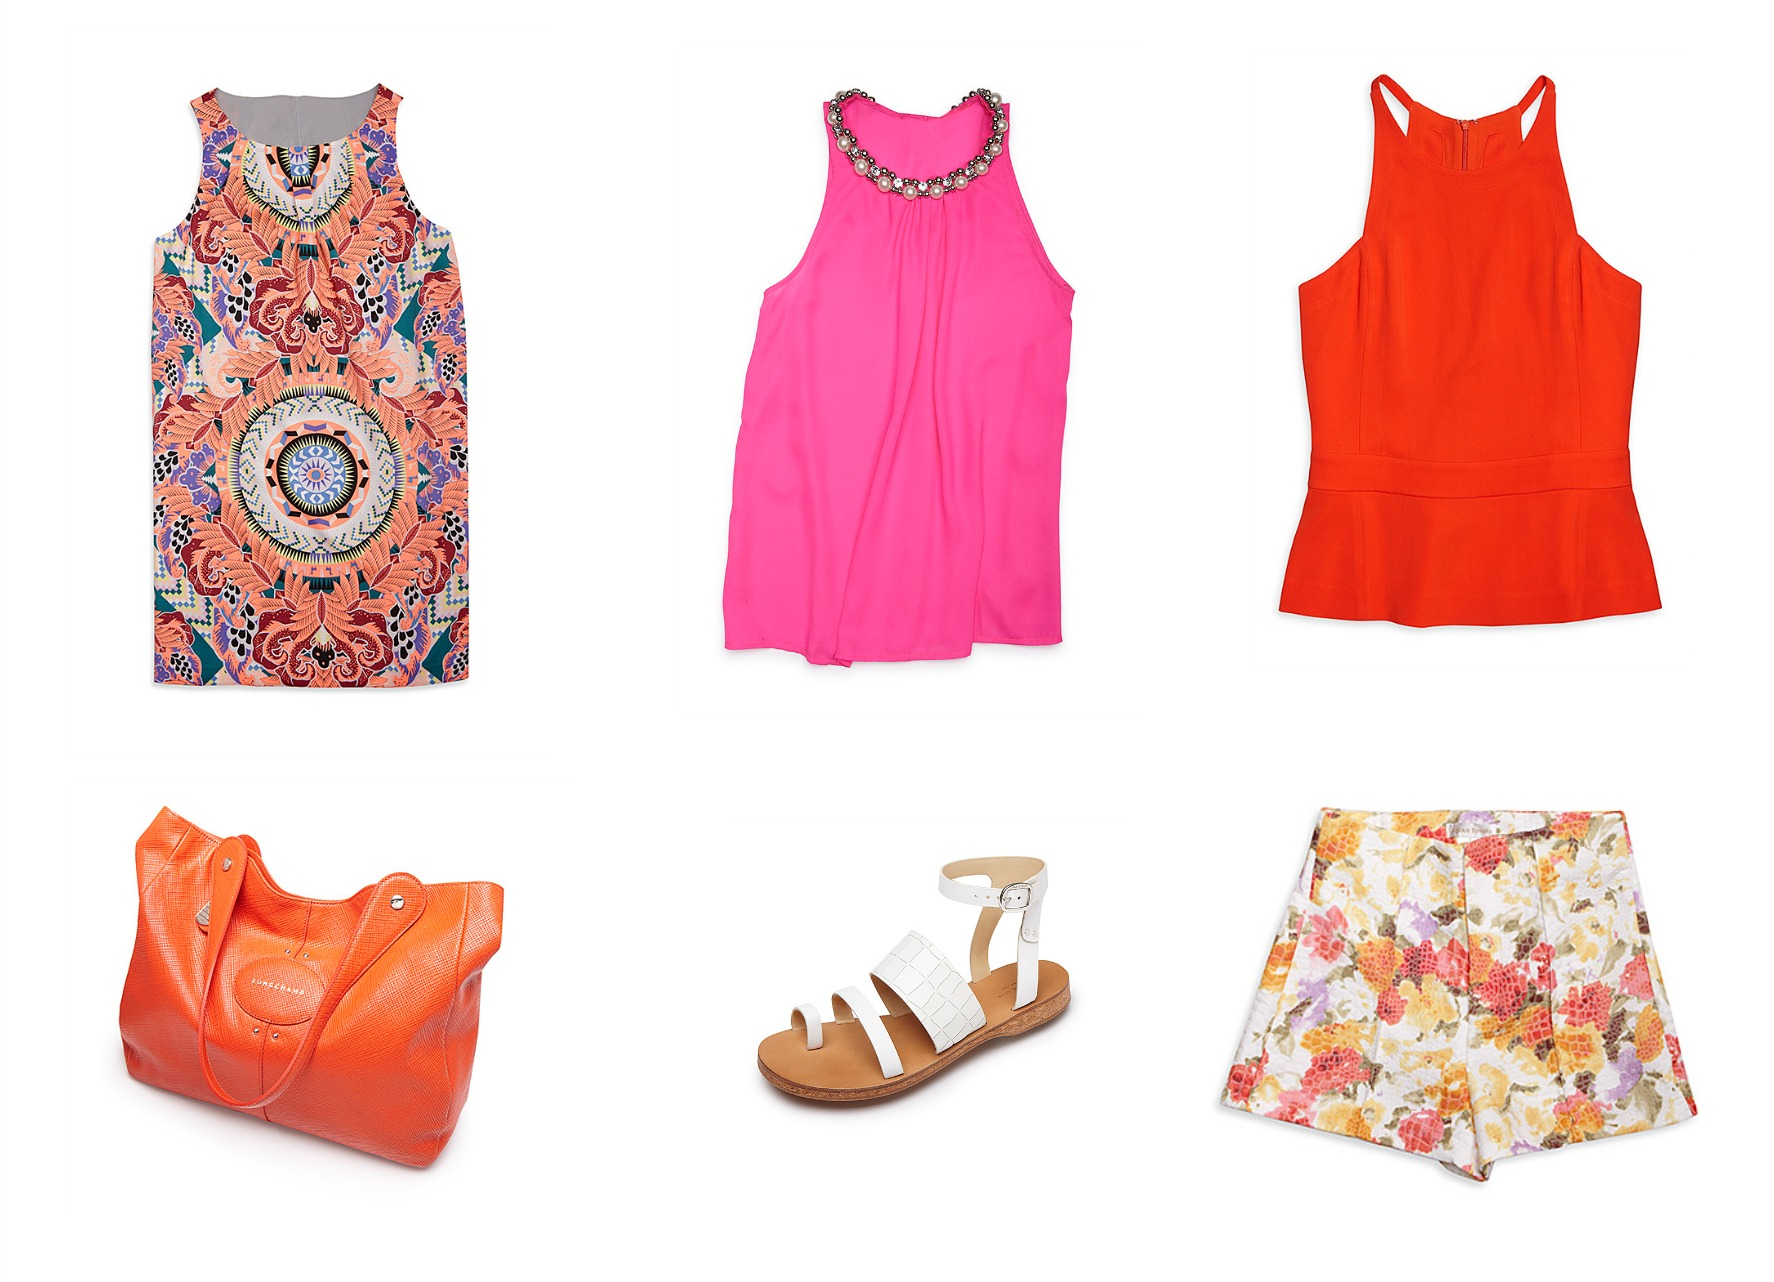 How to Insert Colour into your Summer Wardrobe